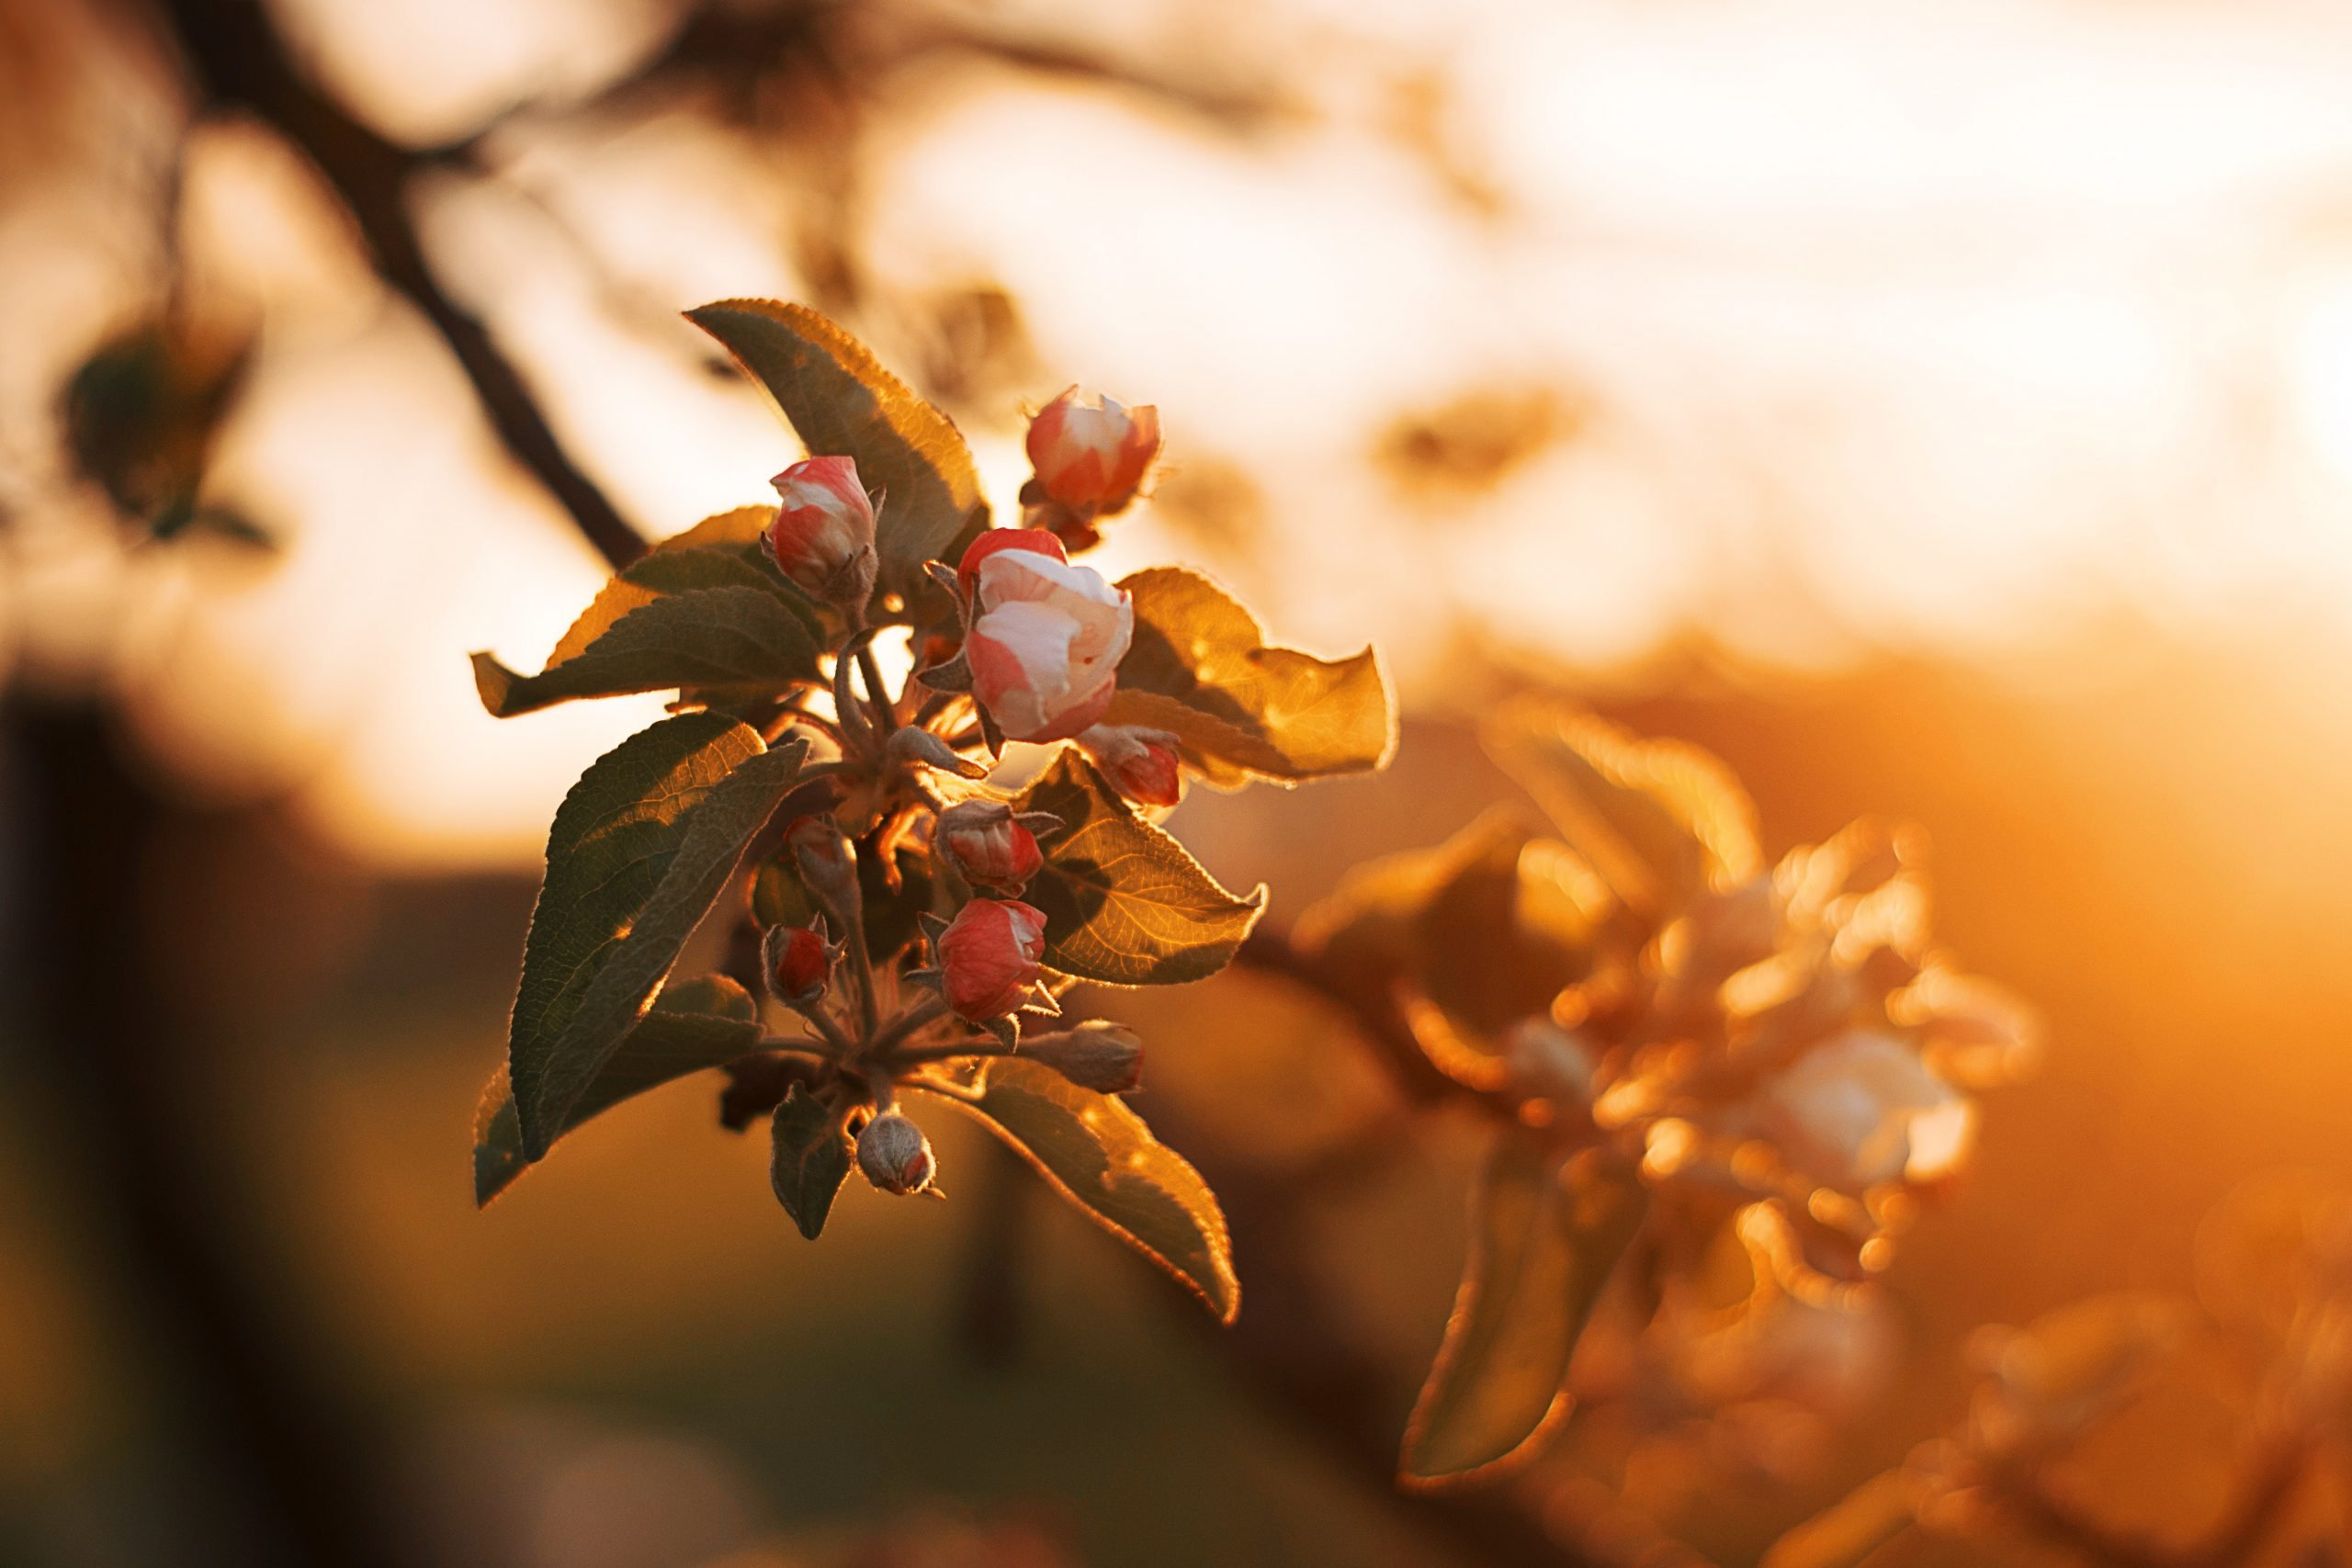 """Apple tree blossoms in fading sunlight a picture for the post """"how I manage my anxiety"""""""